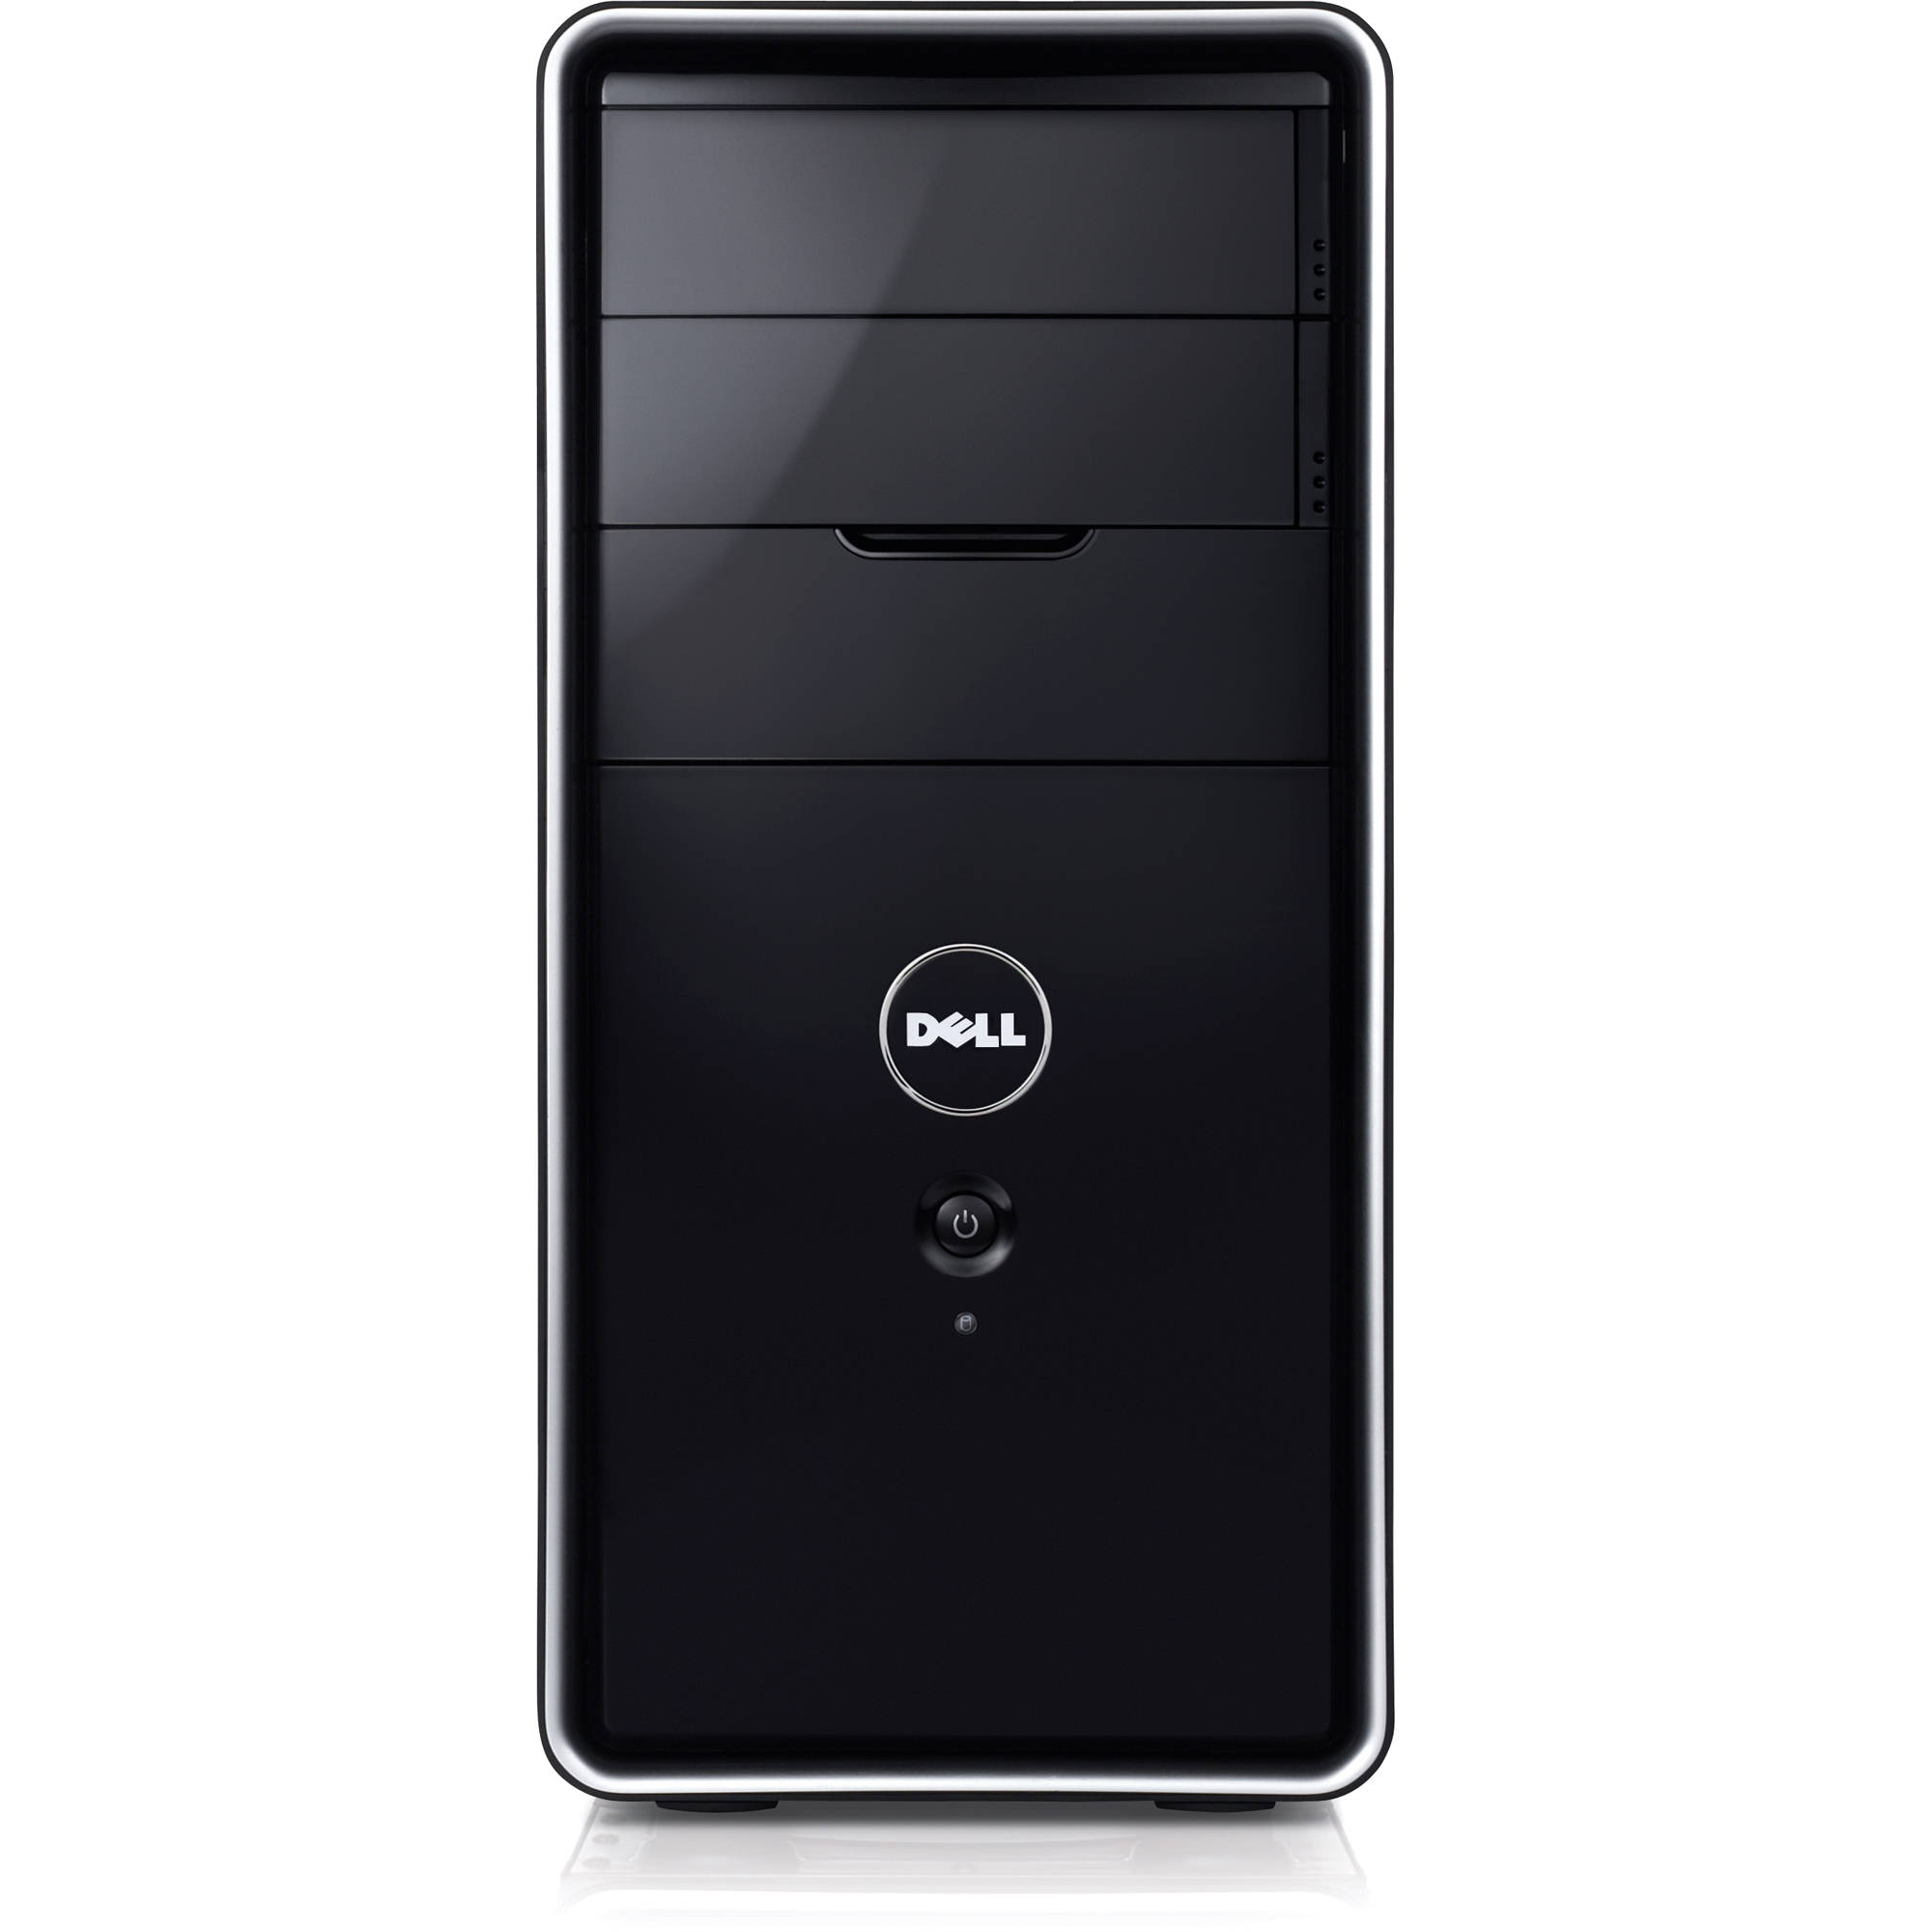 Dell Inspiron 560 Drivers Download